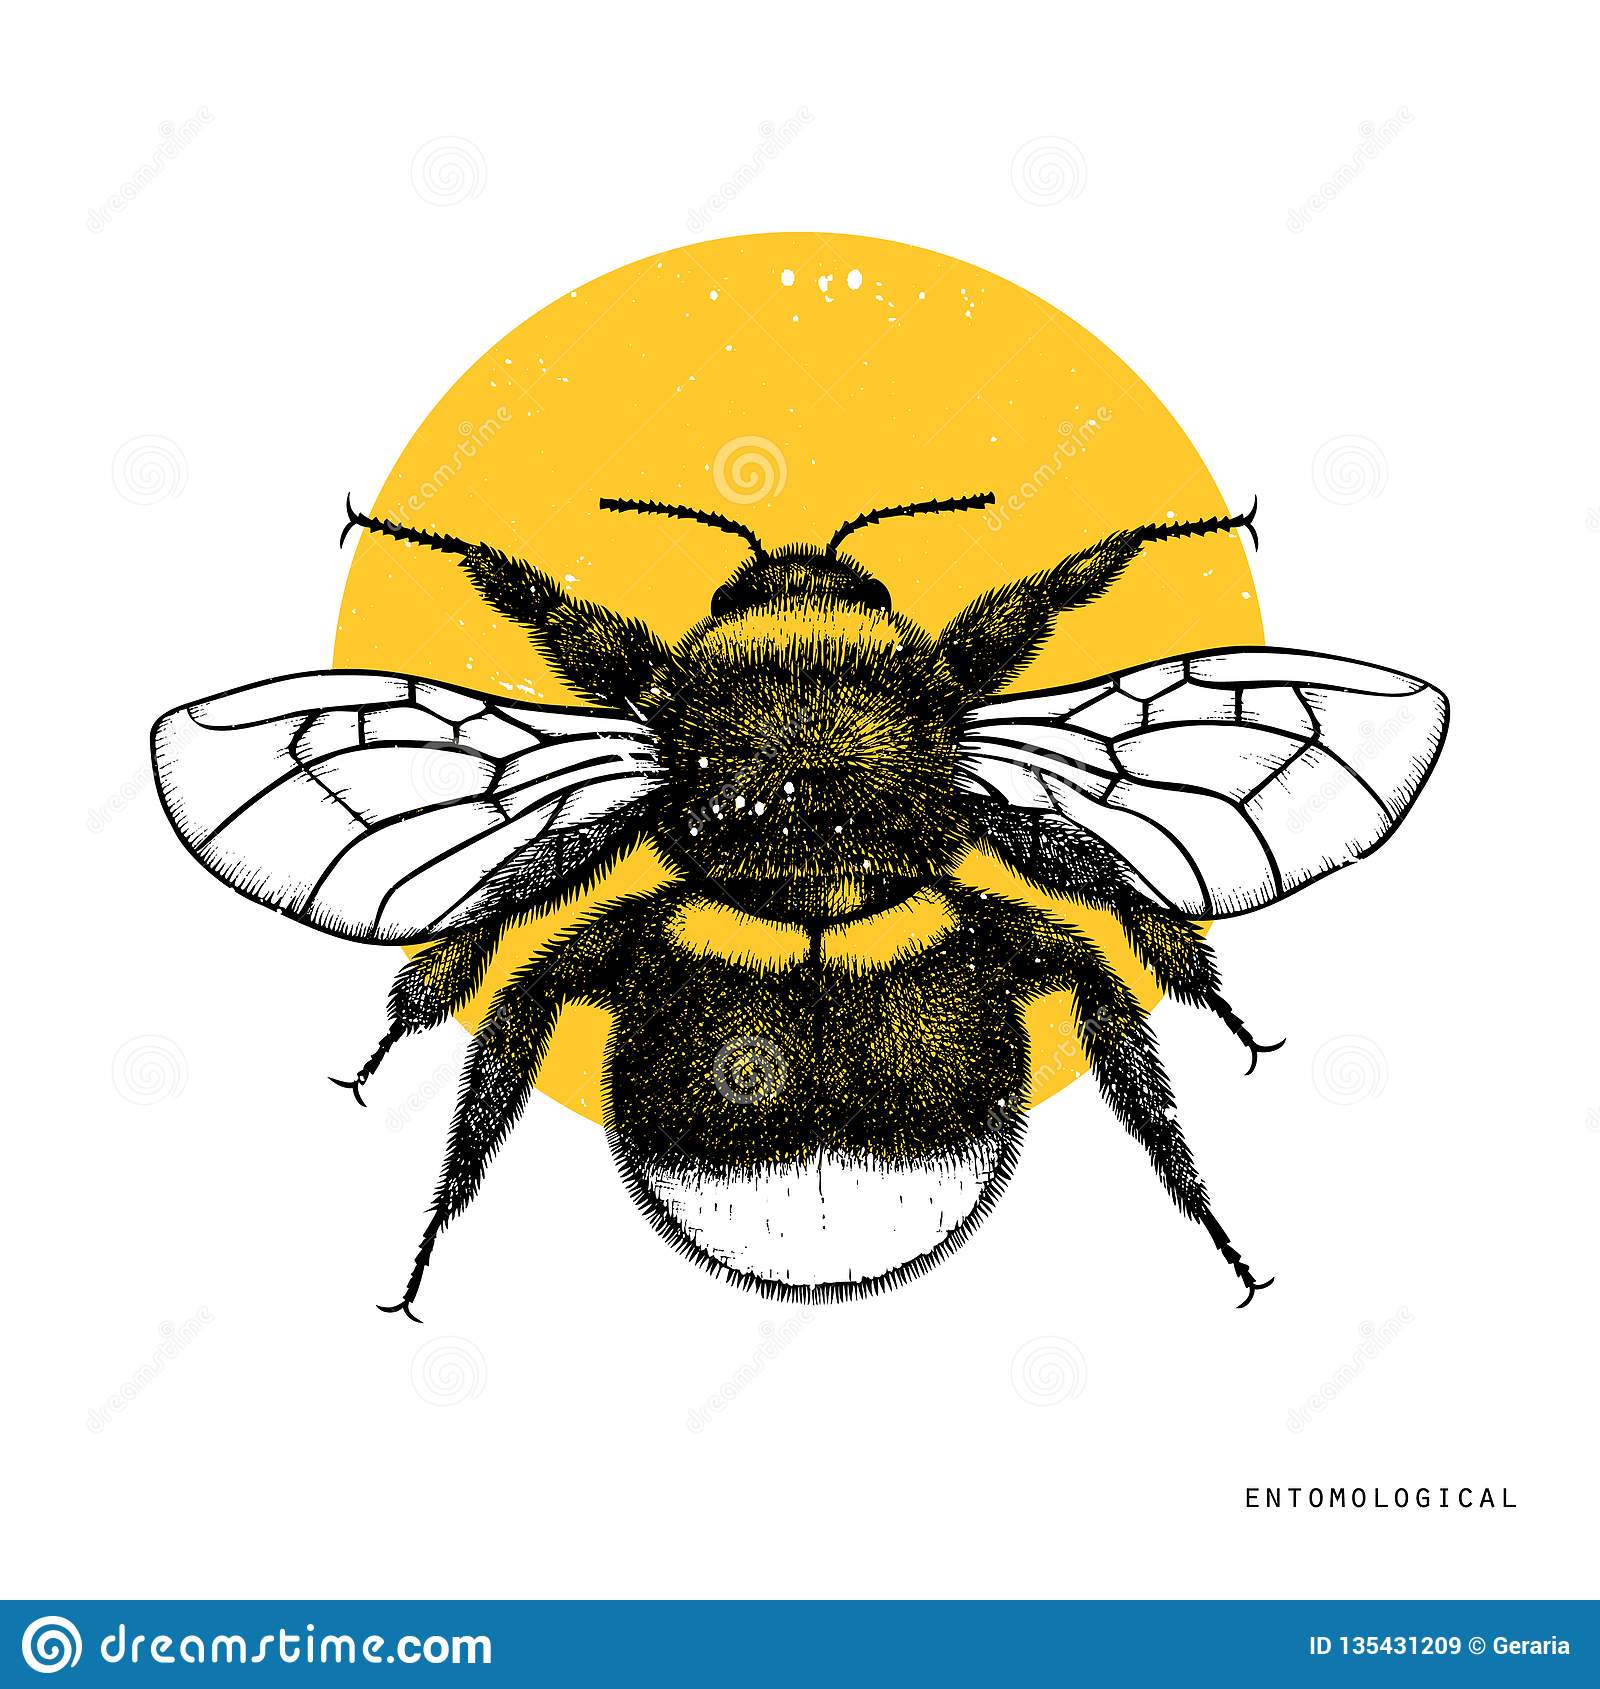 Vector drawing of Bumlebee. Hand drawn insect sketch isolated on white. Engraving style bumble bee illustrations.